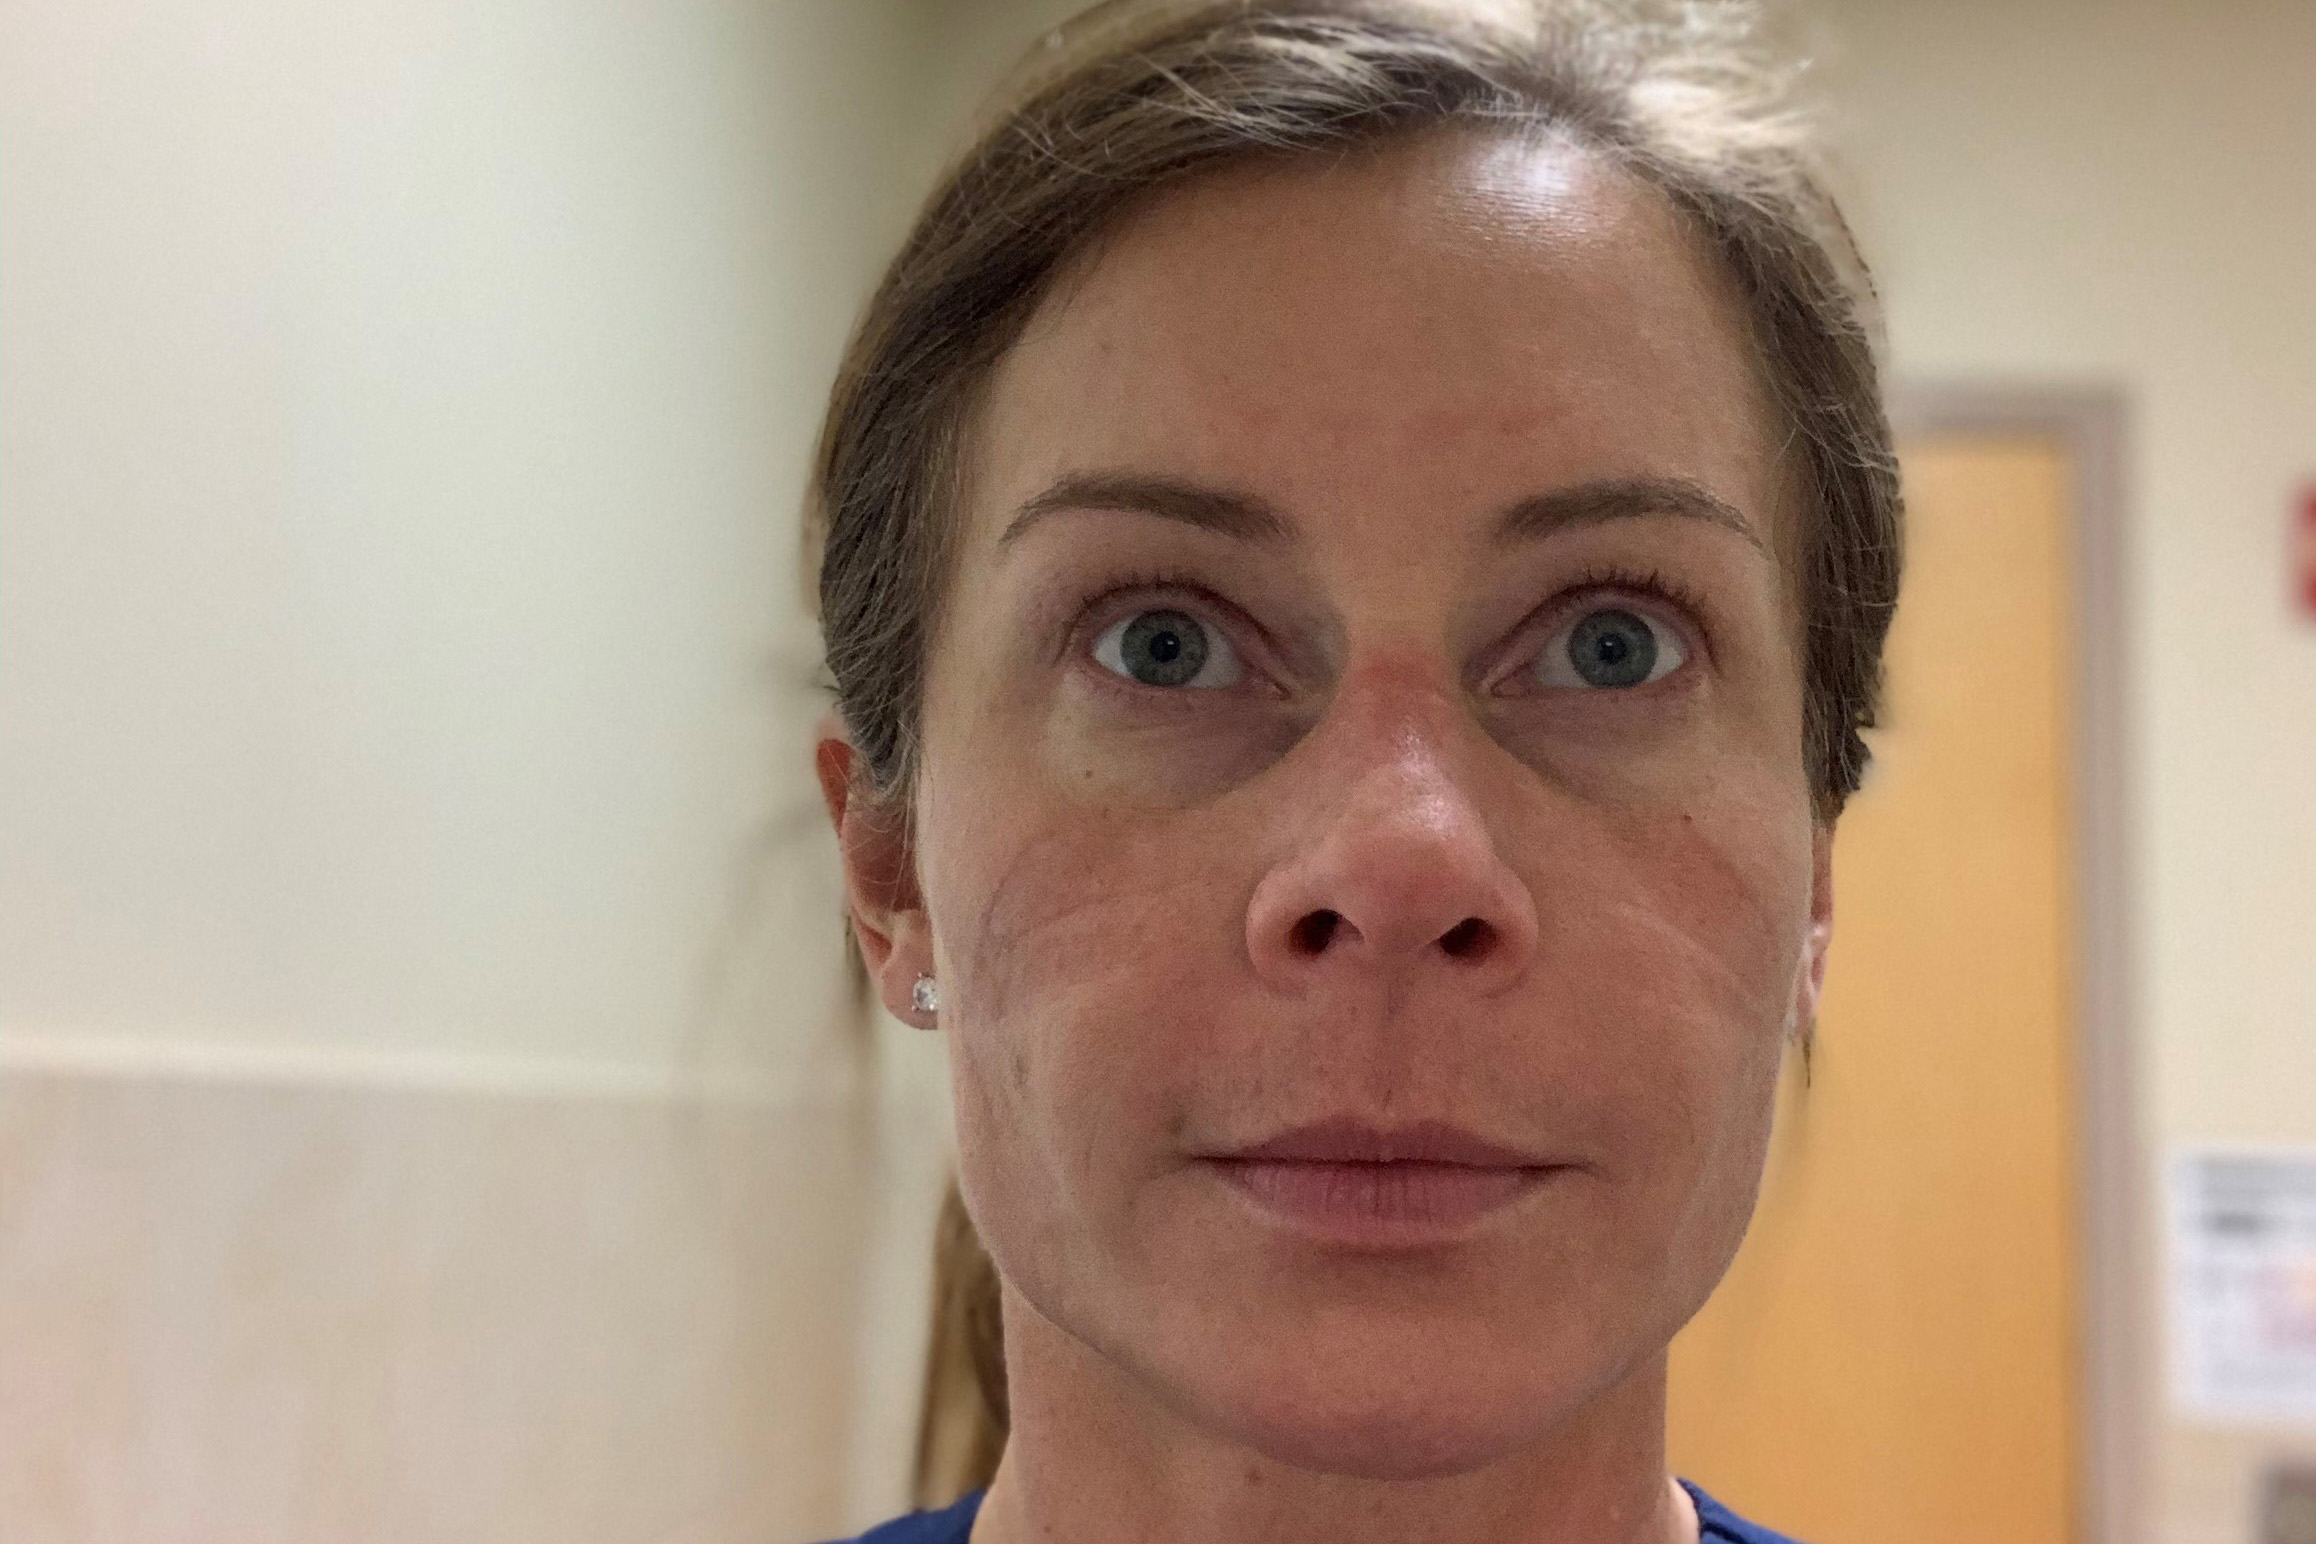 Jennifer Simpson Weier shows the marks on her face left from wearing the N-95 mask while helping COVID-19 patients